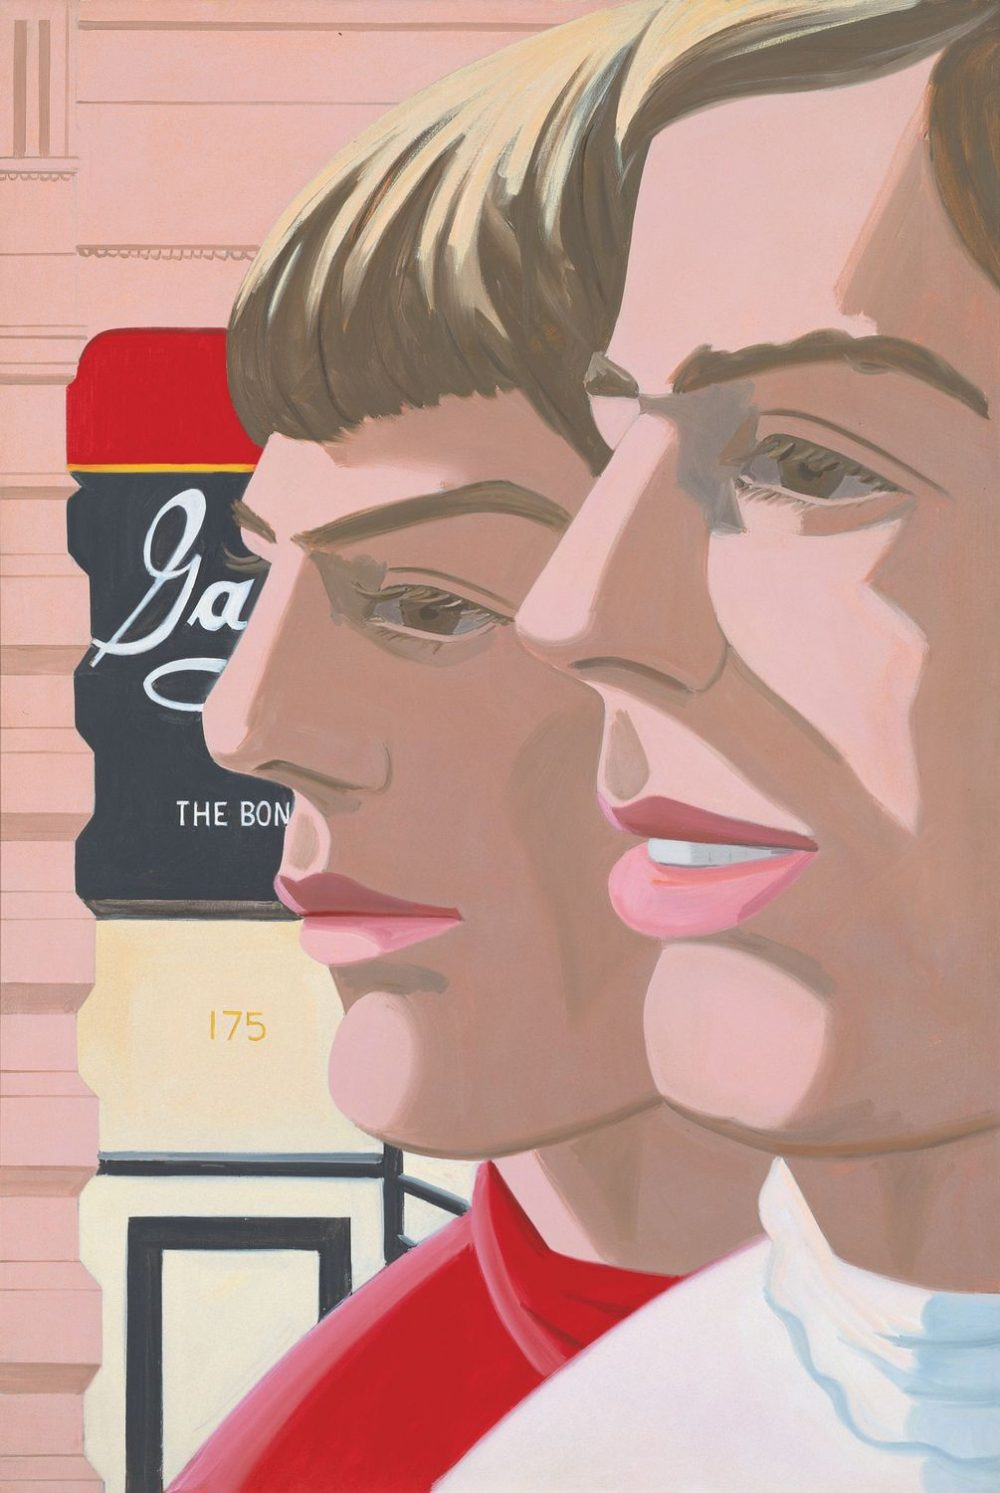 Ausstellung im Museum Frieder Burda,  Alex Katz, Scott and John, 1966, Öl auf Leinwand, Museum Frieder Burda, Art On Screen - News - [AOS] Magazine